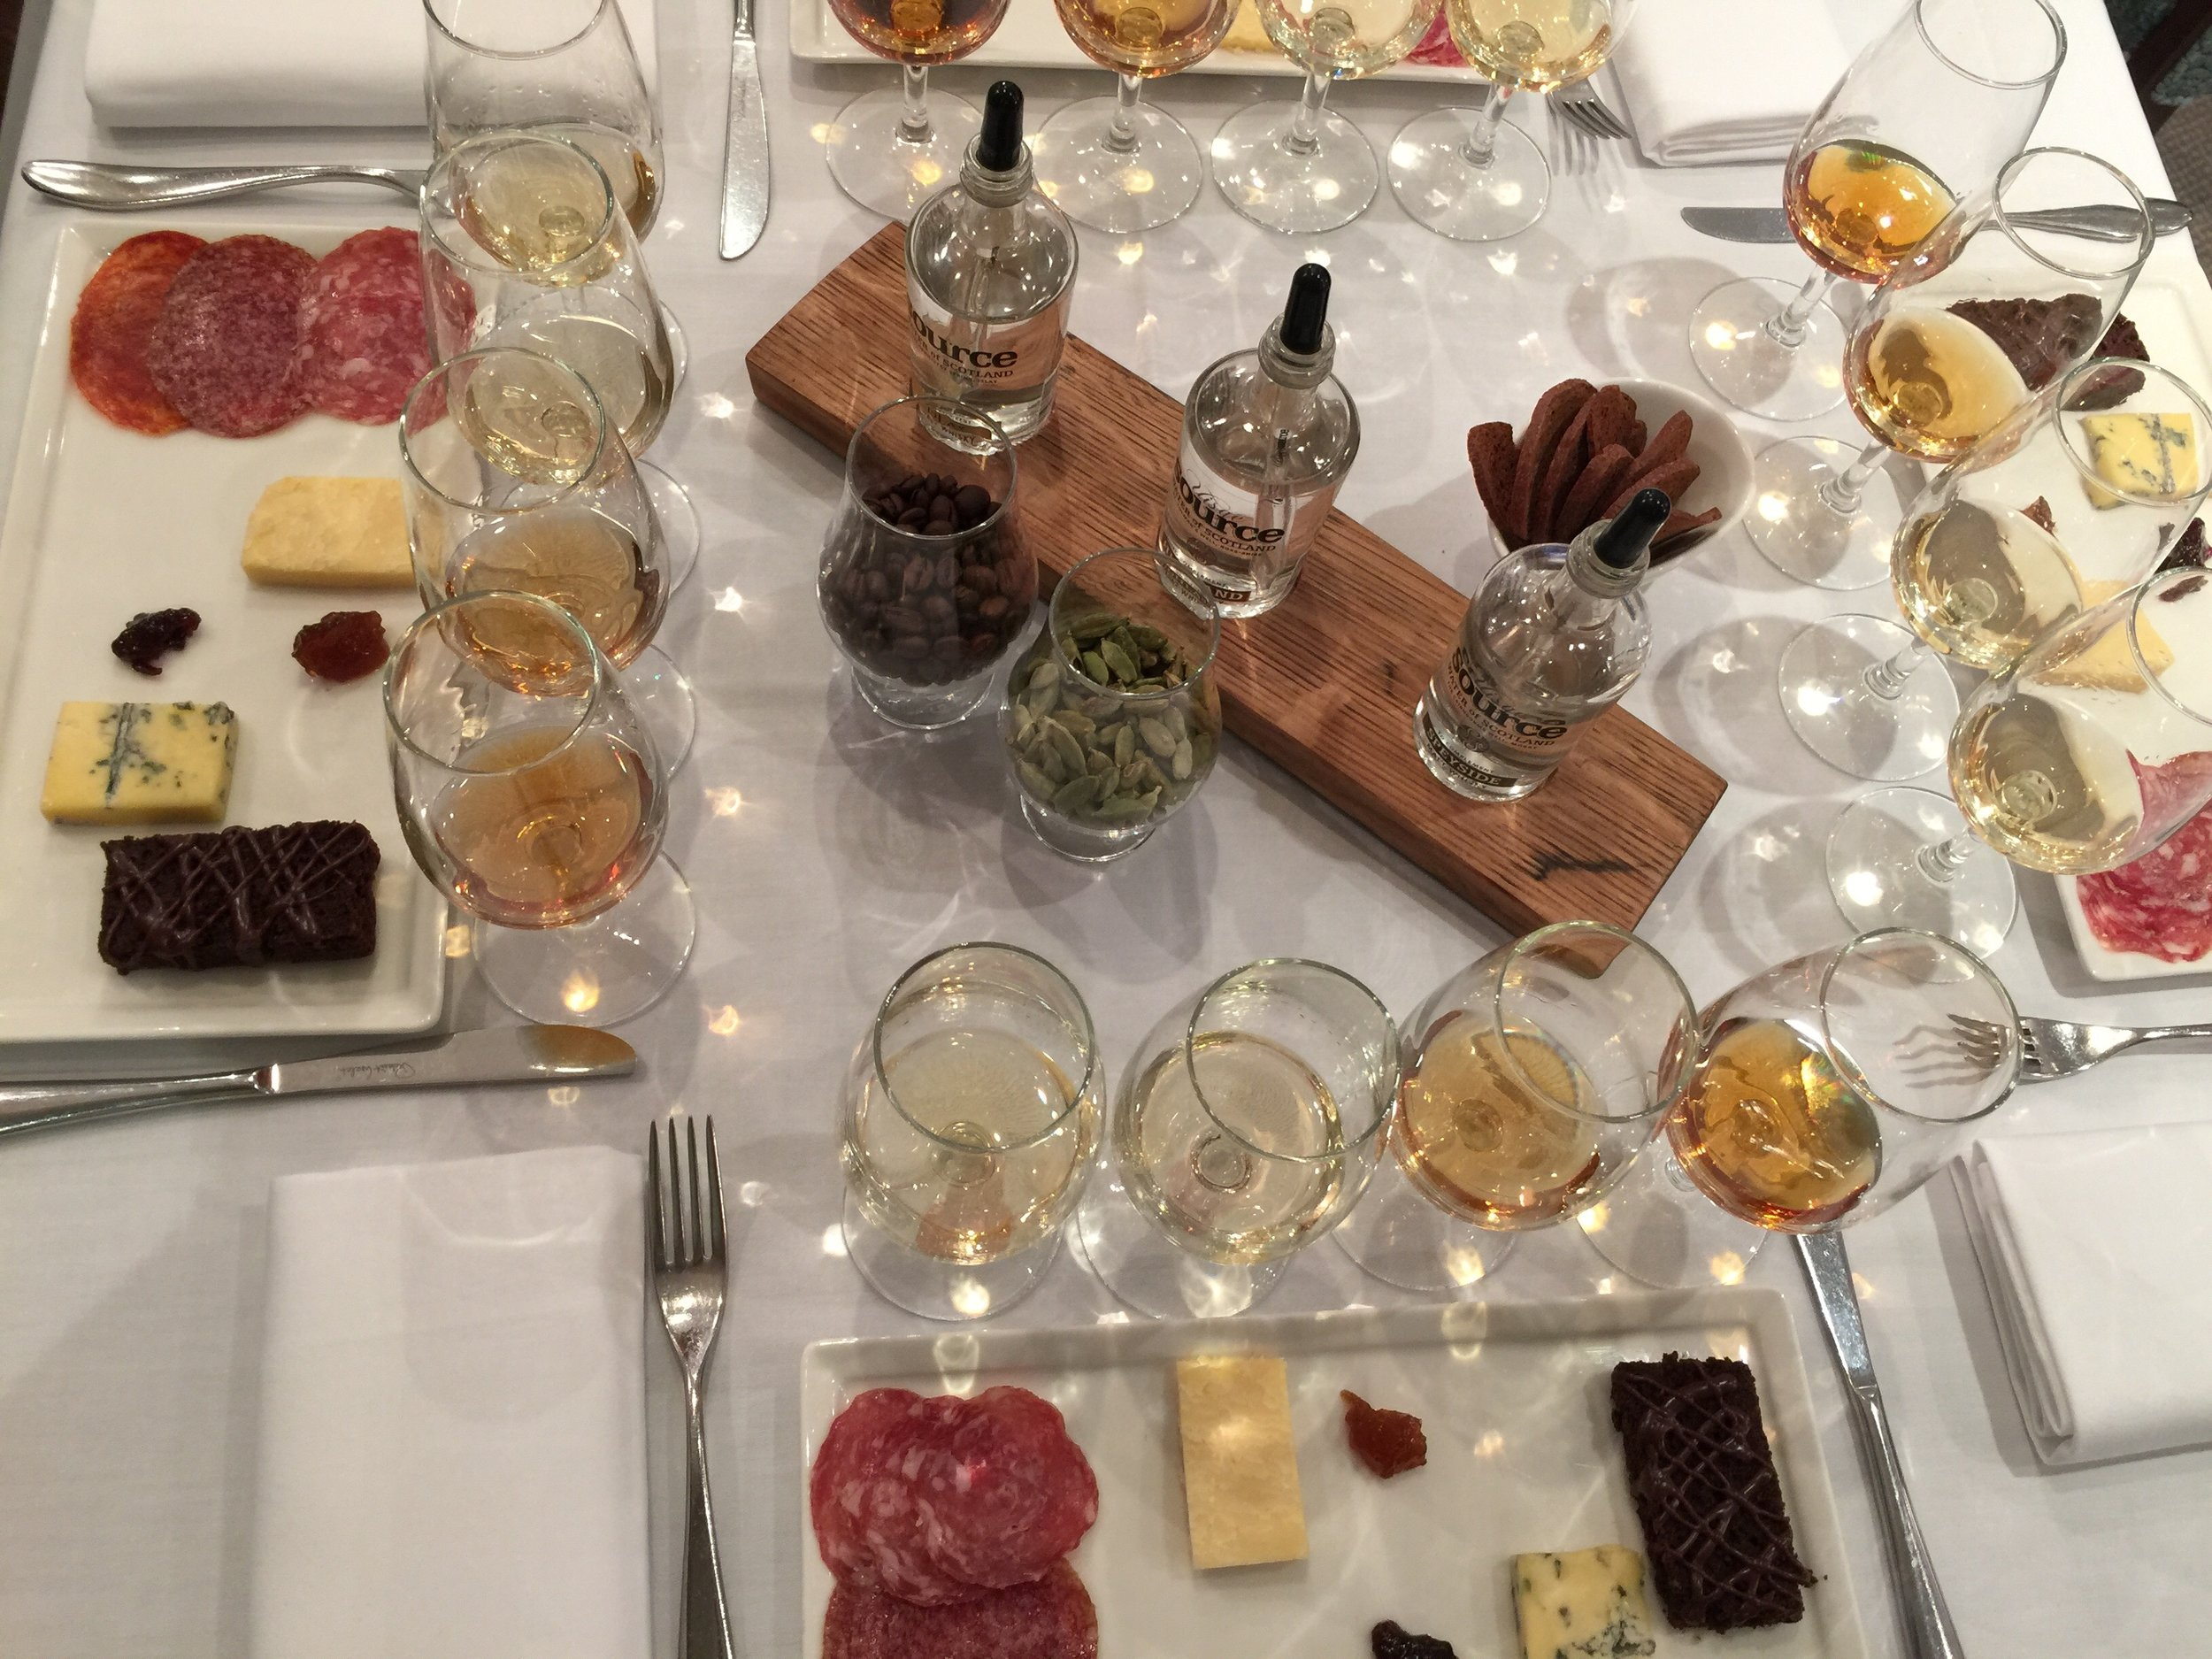 Tables set for the Guild of Food Writers tasting: whiskies, salami, cheeses and complementary chutneys and chocolate cake, plus waters from various whisky regions, and cardamoms and coffee beans to clear to nose.